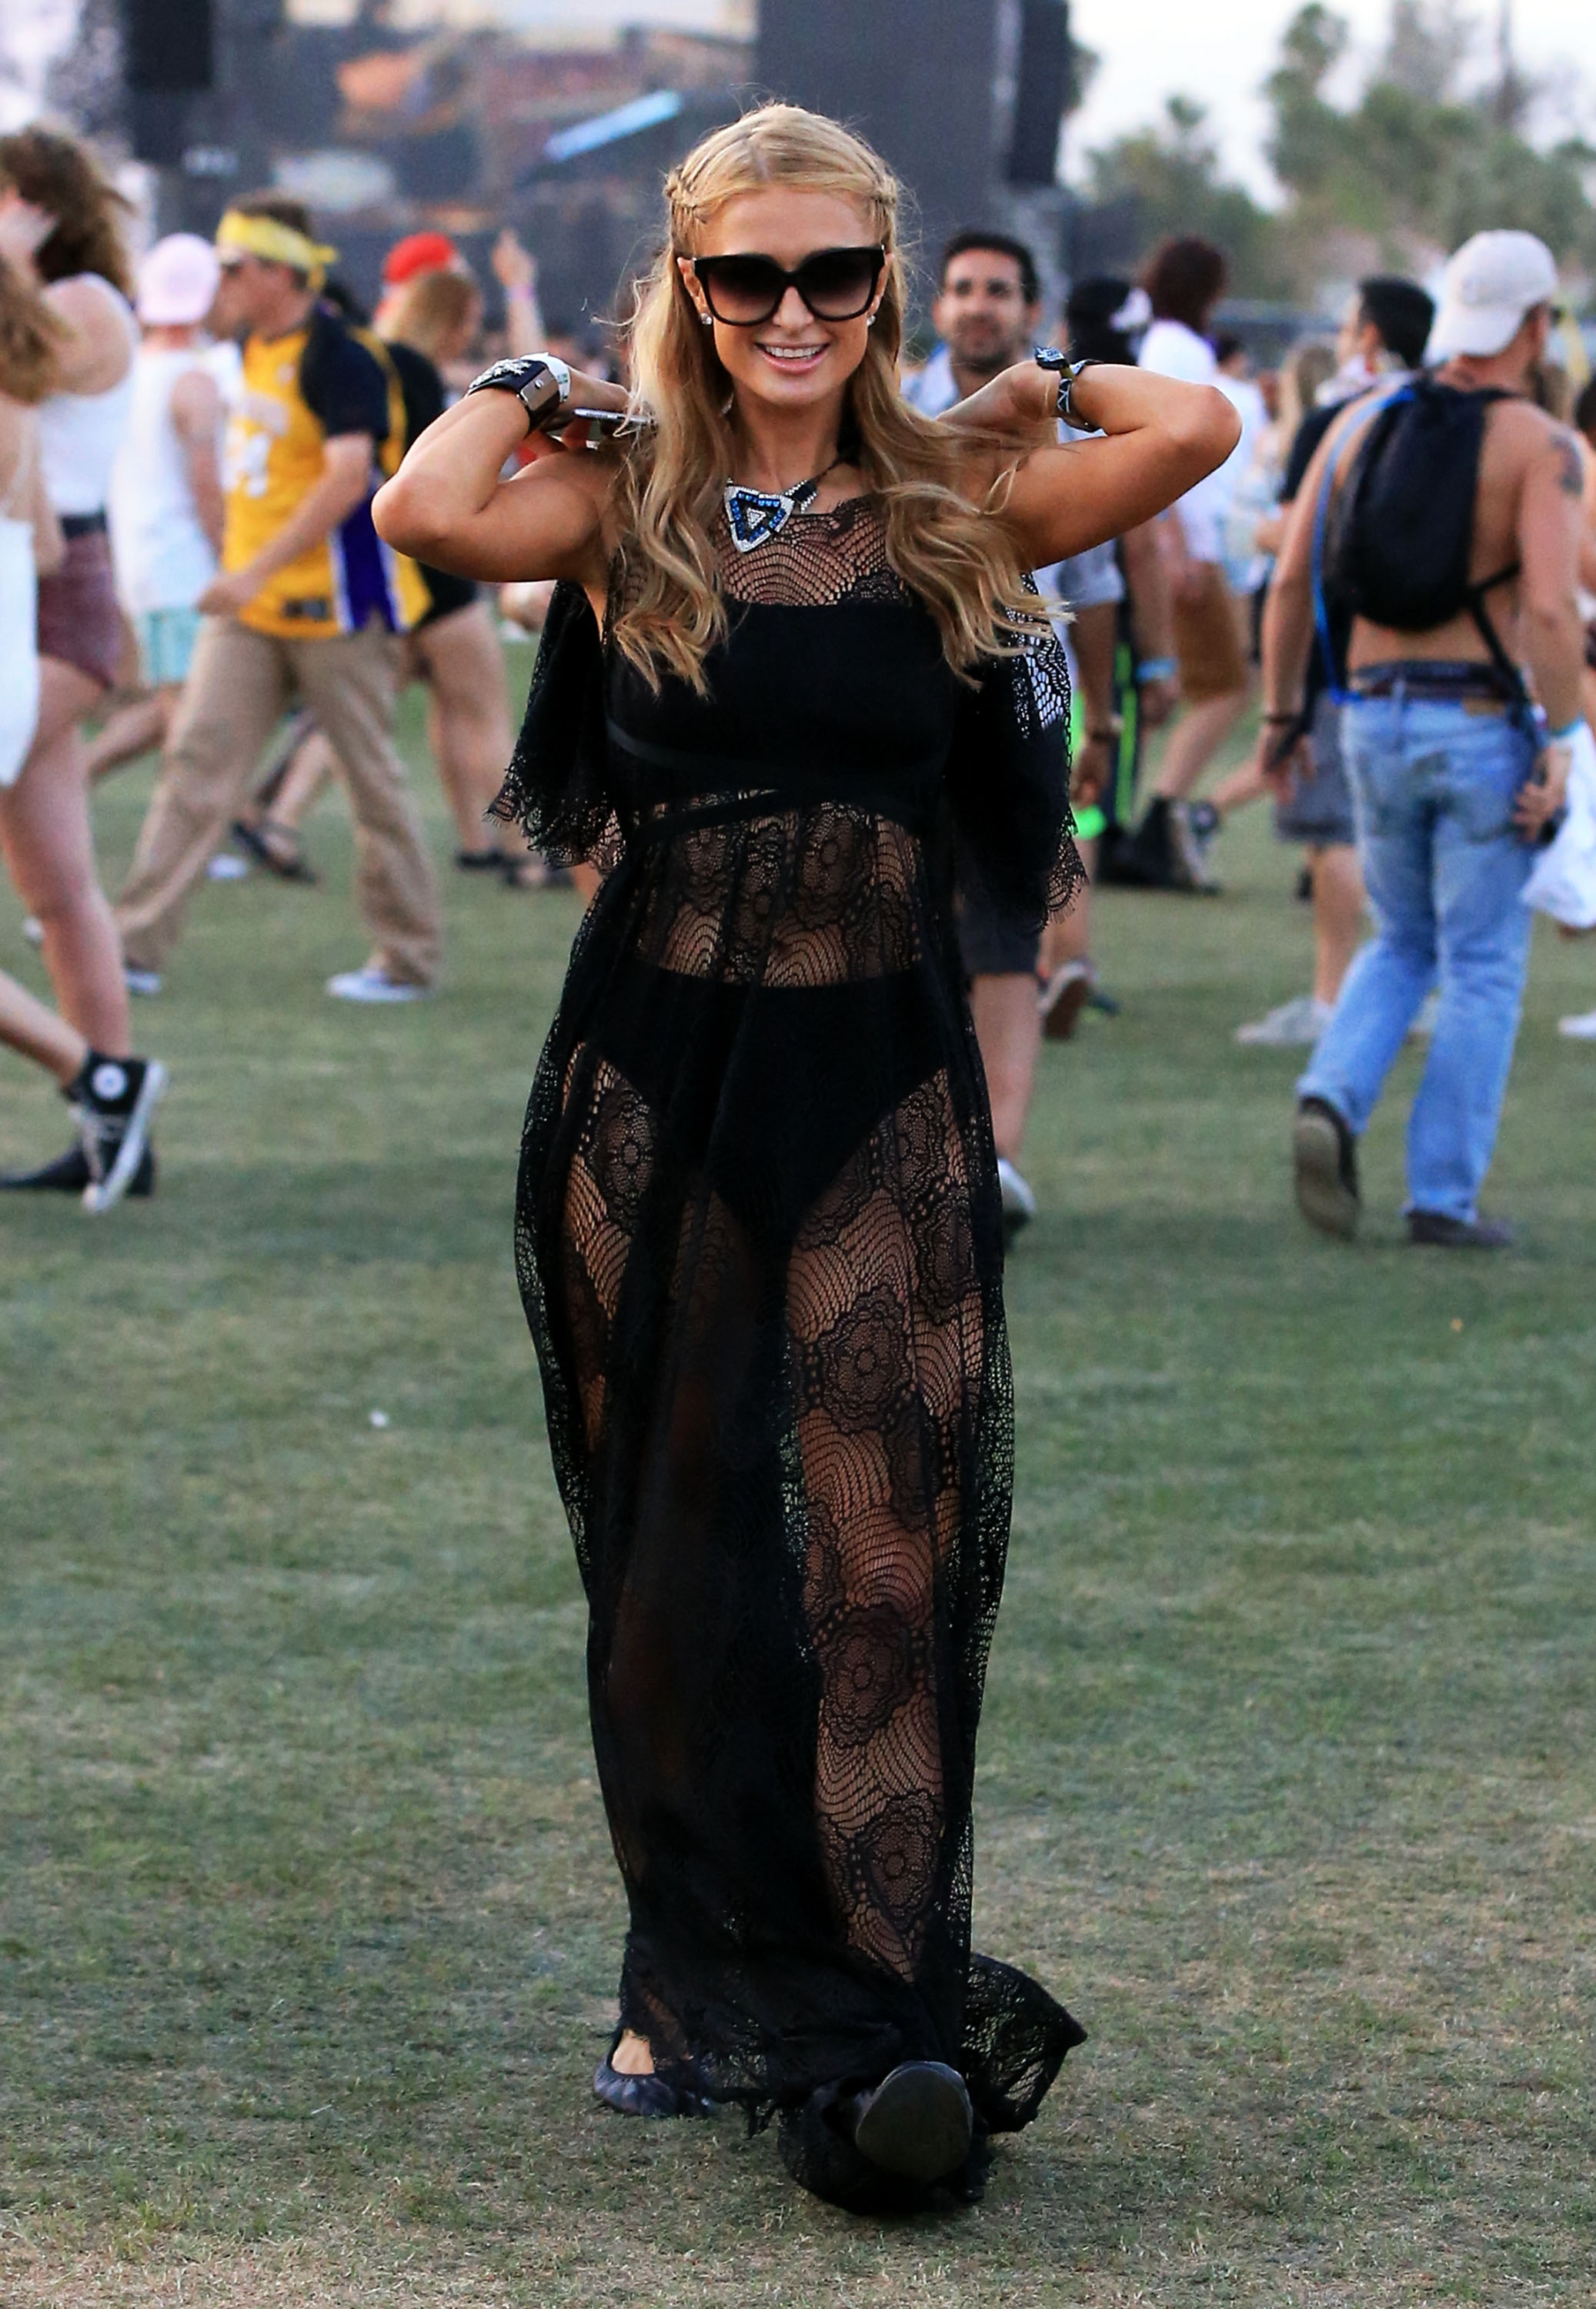 Paris Hilton: Never does she simplify it! She brings the wow factor to everything, demonstrating it here at Coachella she rocks this stunning bohemian style dress that is absolutely breath-taking.